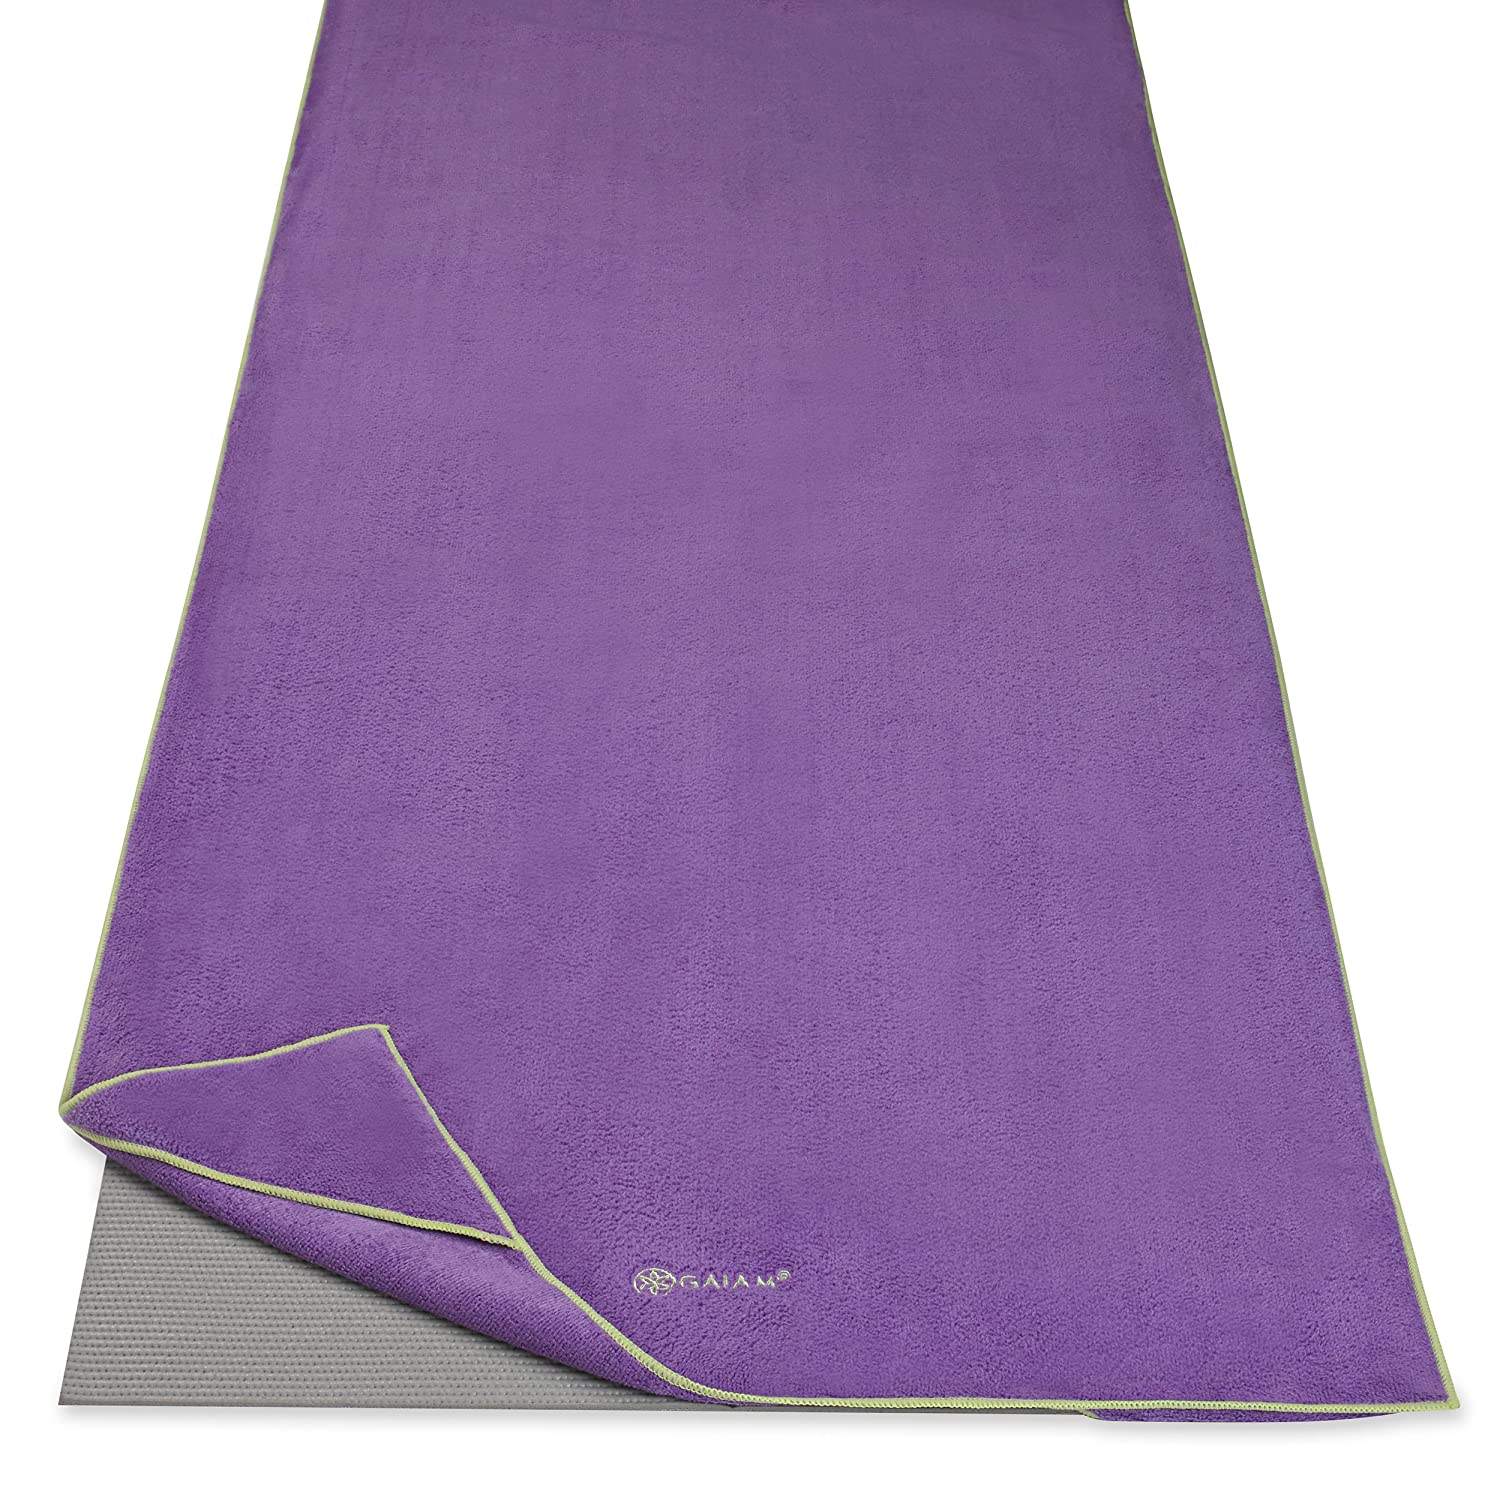 Gaiam Stay-Put Yoga Towel Lake Fit For Life 05-62918